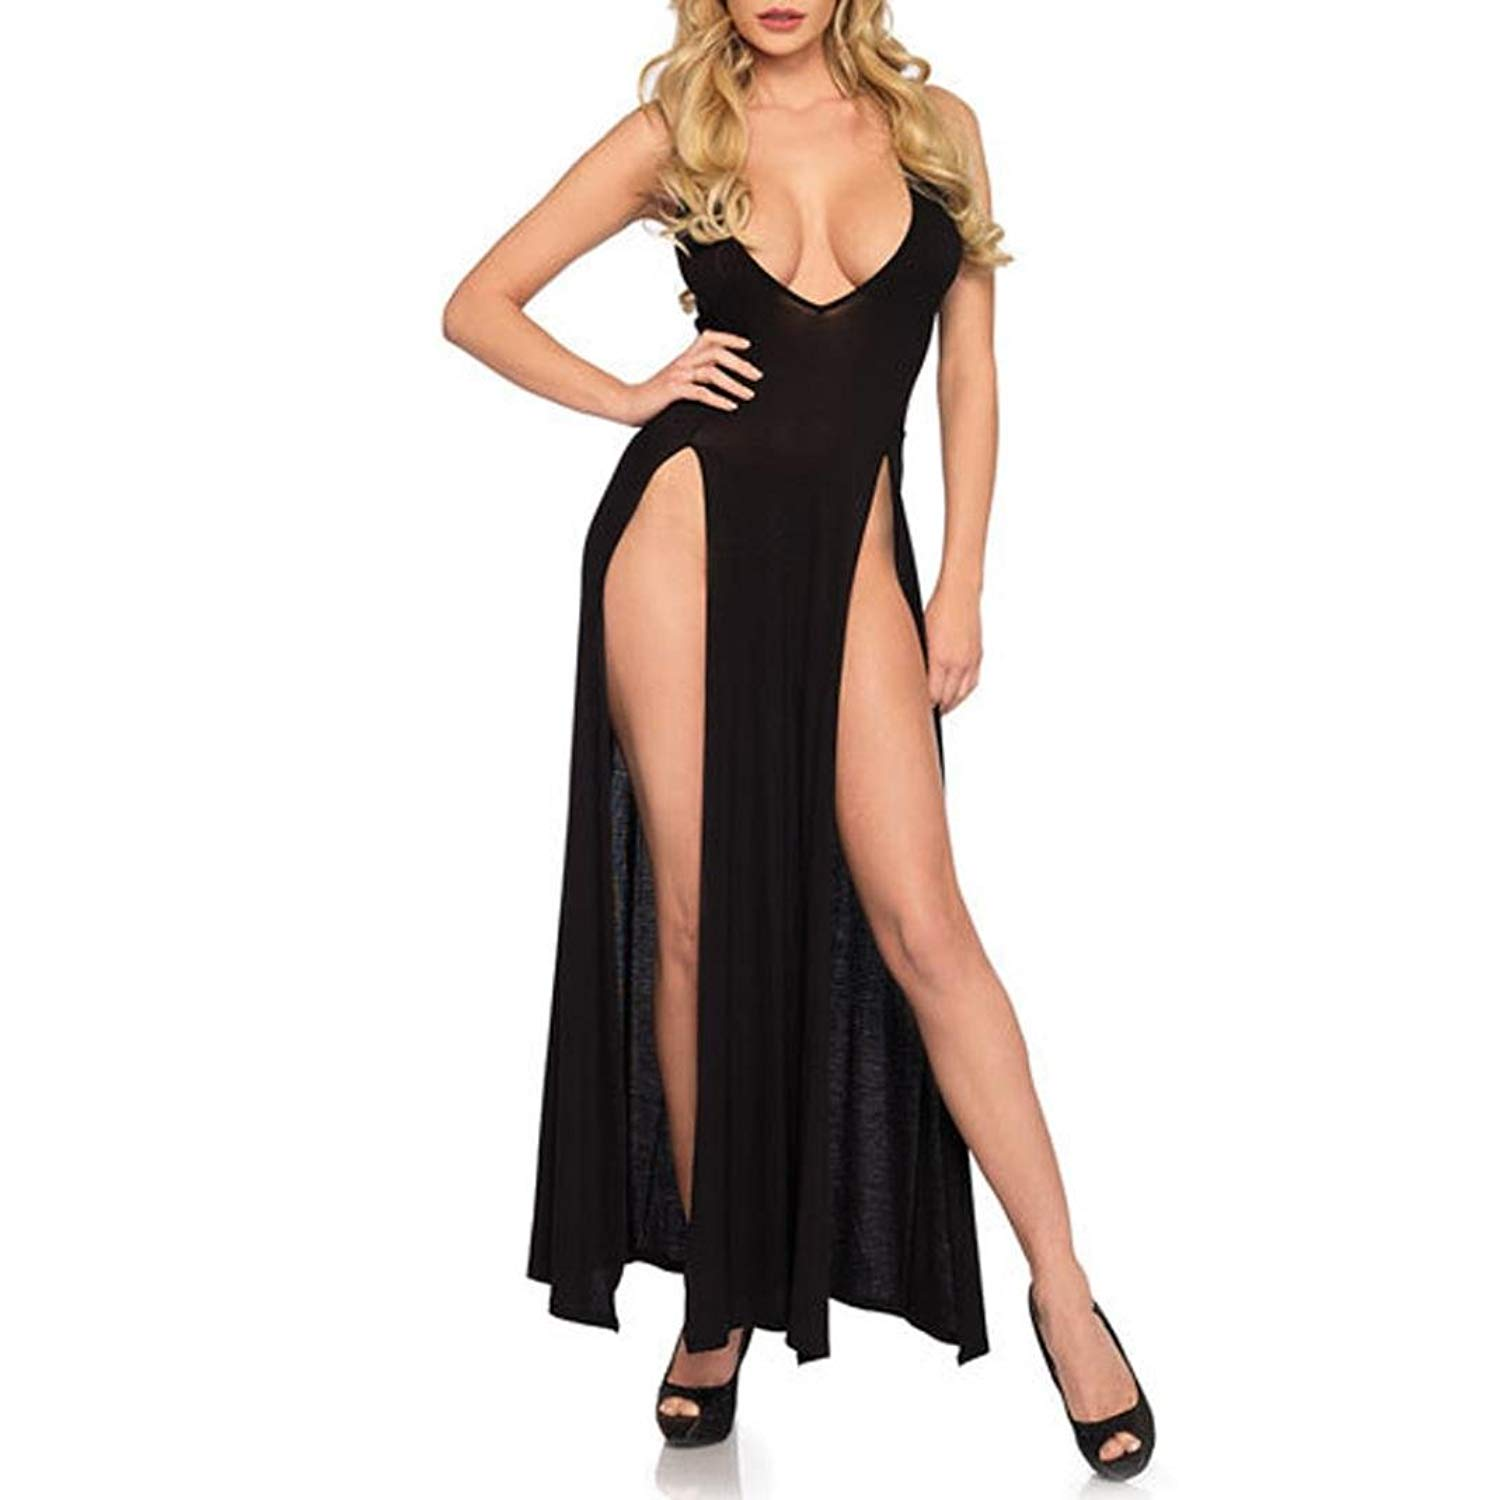 0c6297d9b63 DongDong Clearance Sale! Lady Sexy Lingerie Plus Size Nightdress Long Skirt  Pajamas